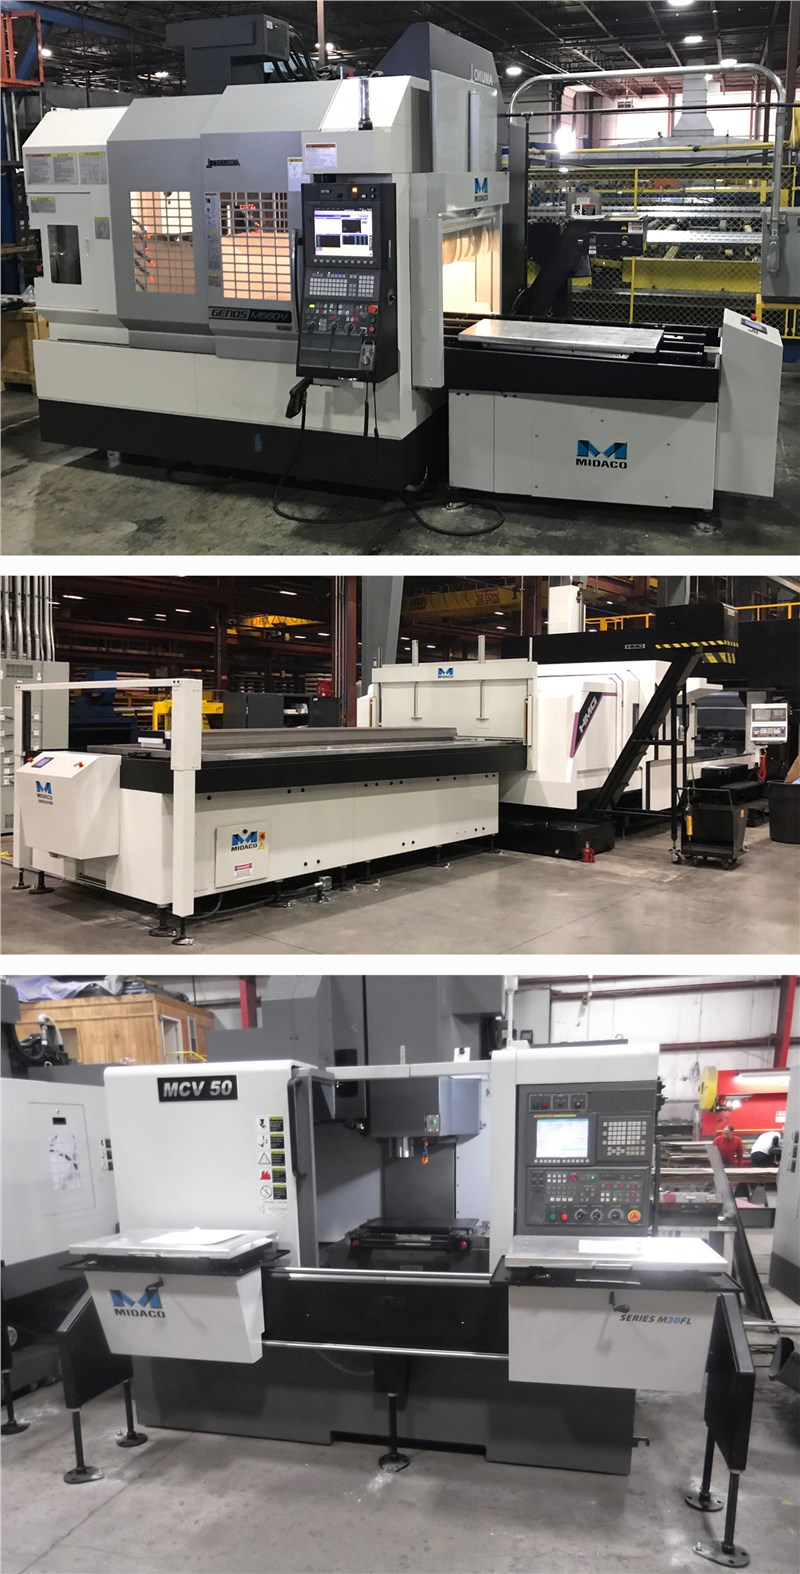 3 images of automatic and manual pallet changes mounted on VMCs